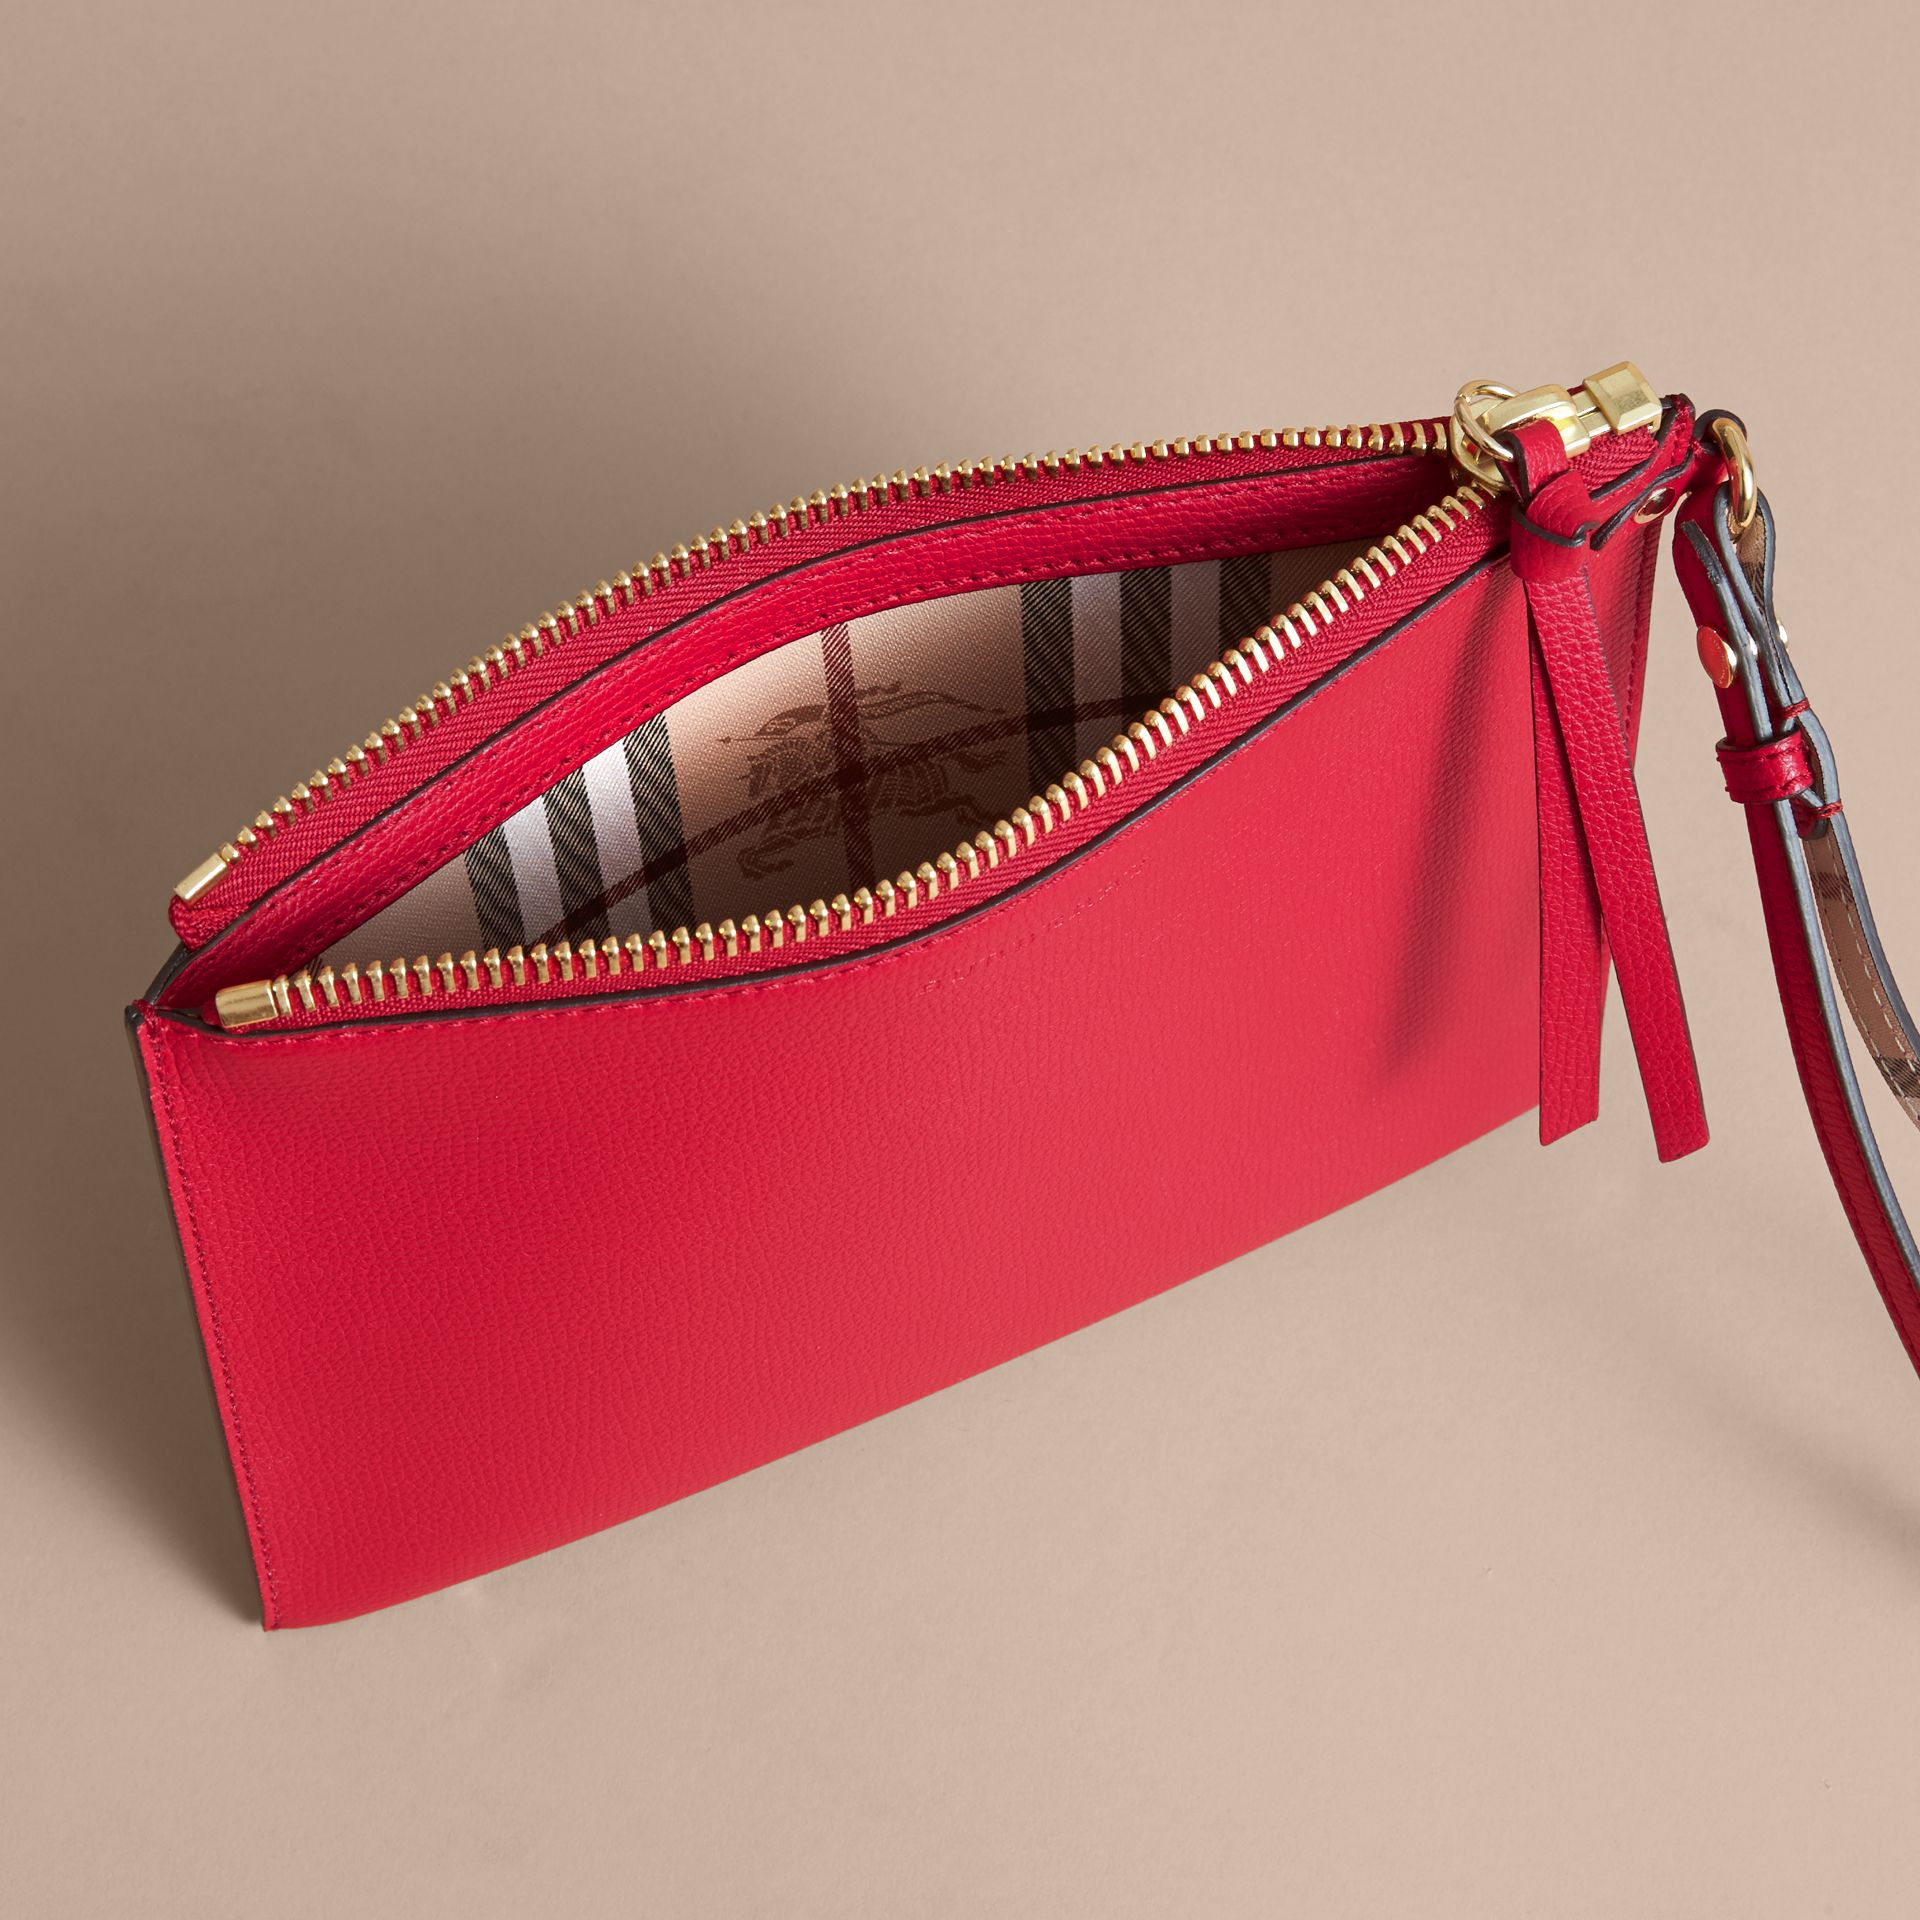 Haymarket Check and Leather Pouch in Poppy Red - Women | Burberry Canada - gallery image 5